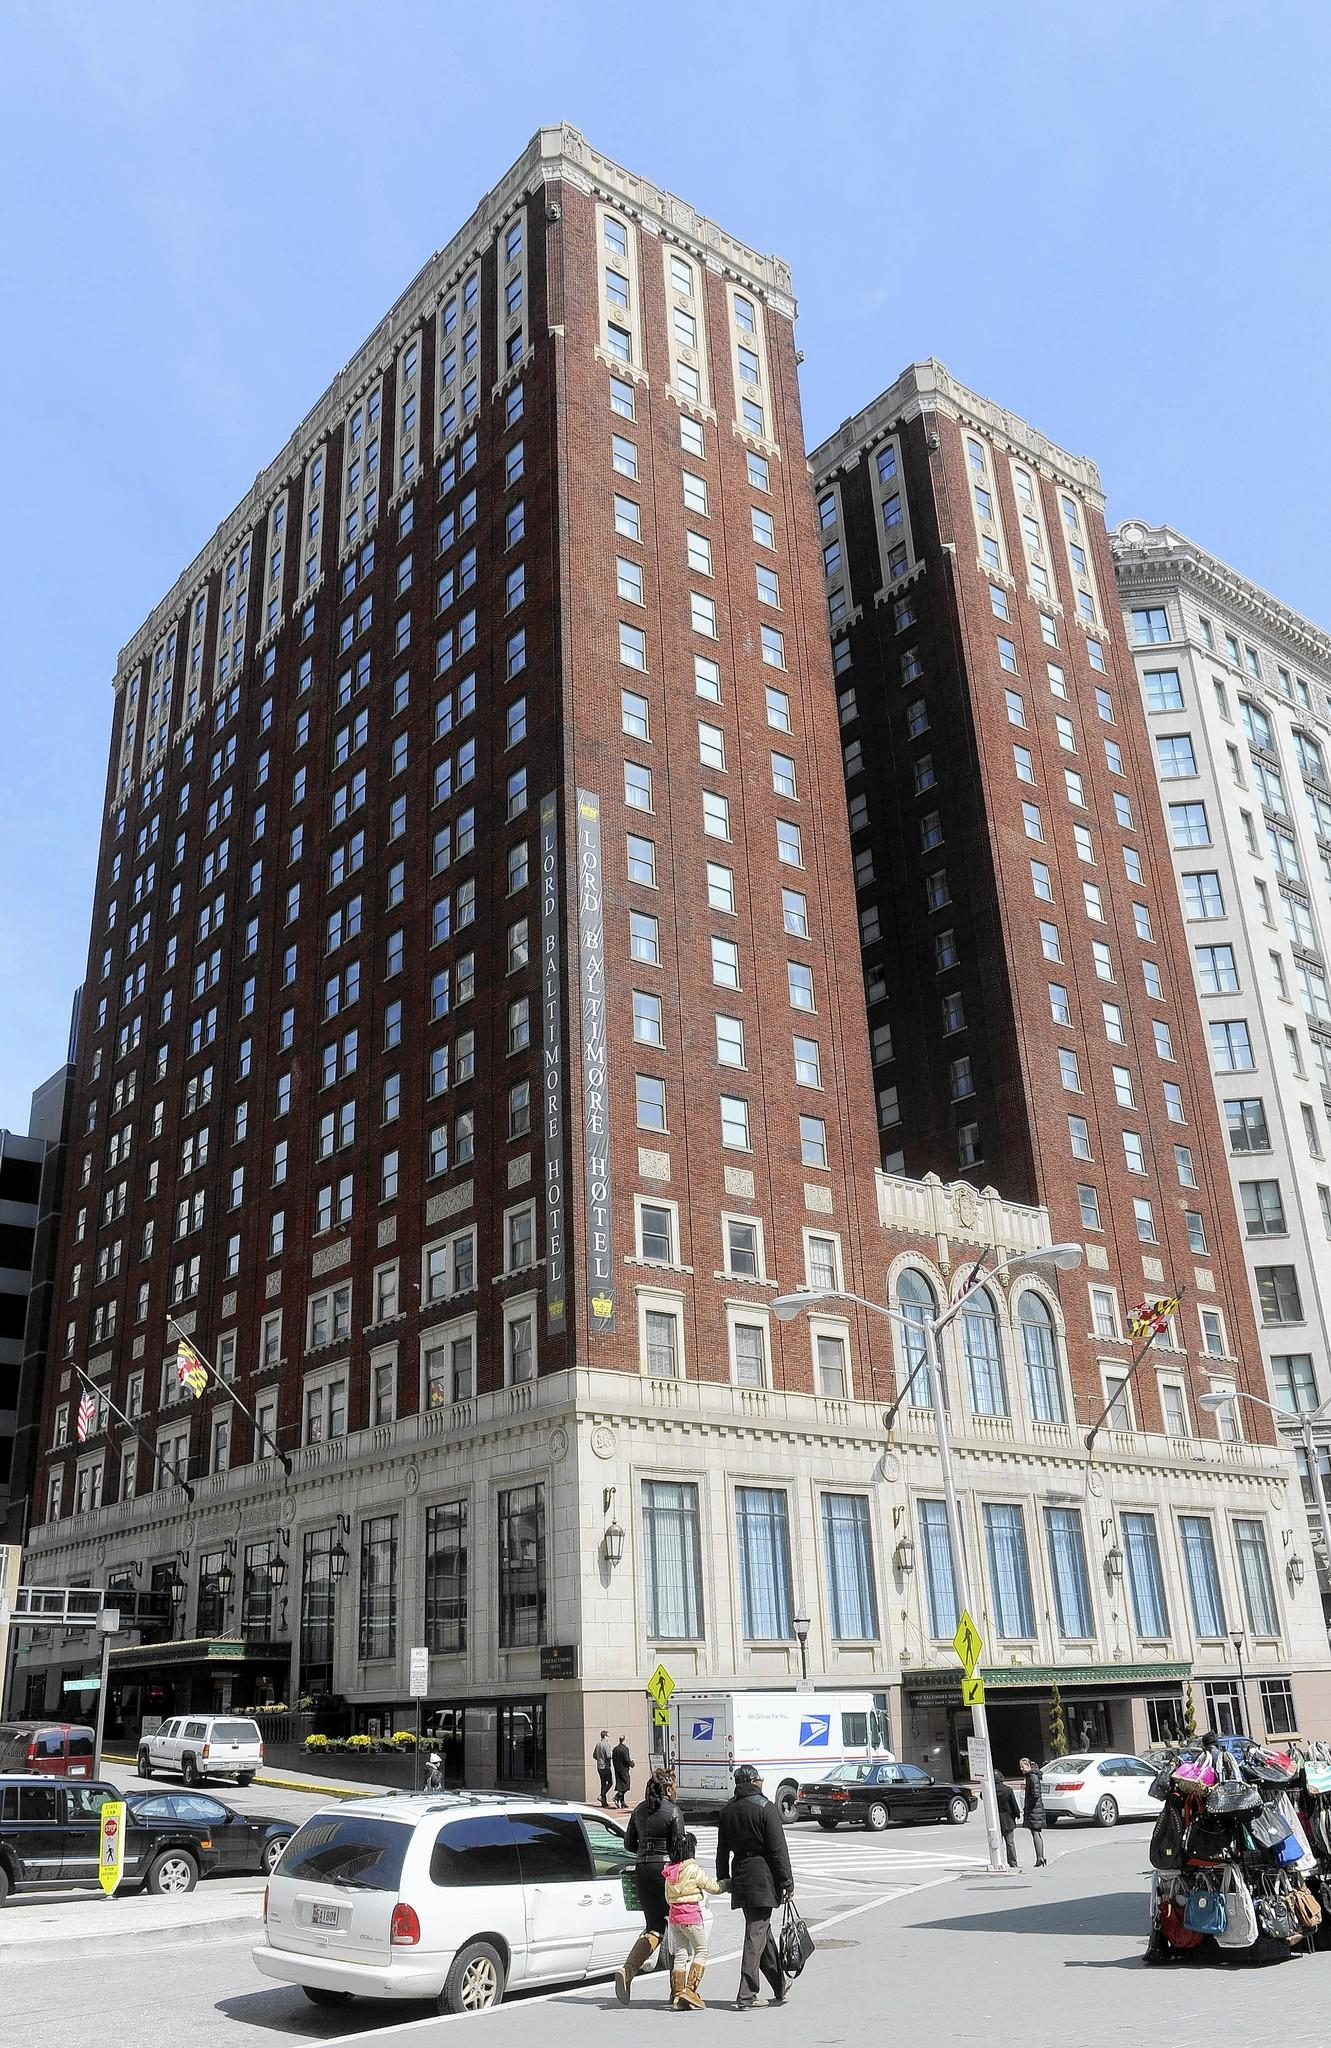 The Lord Baltimore Hotel downtown has been recently renovated.